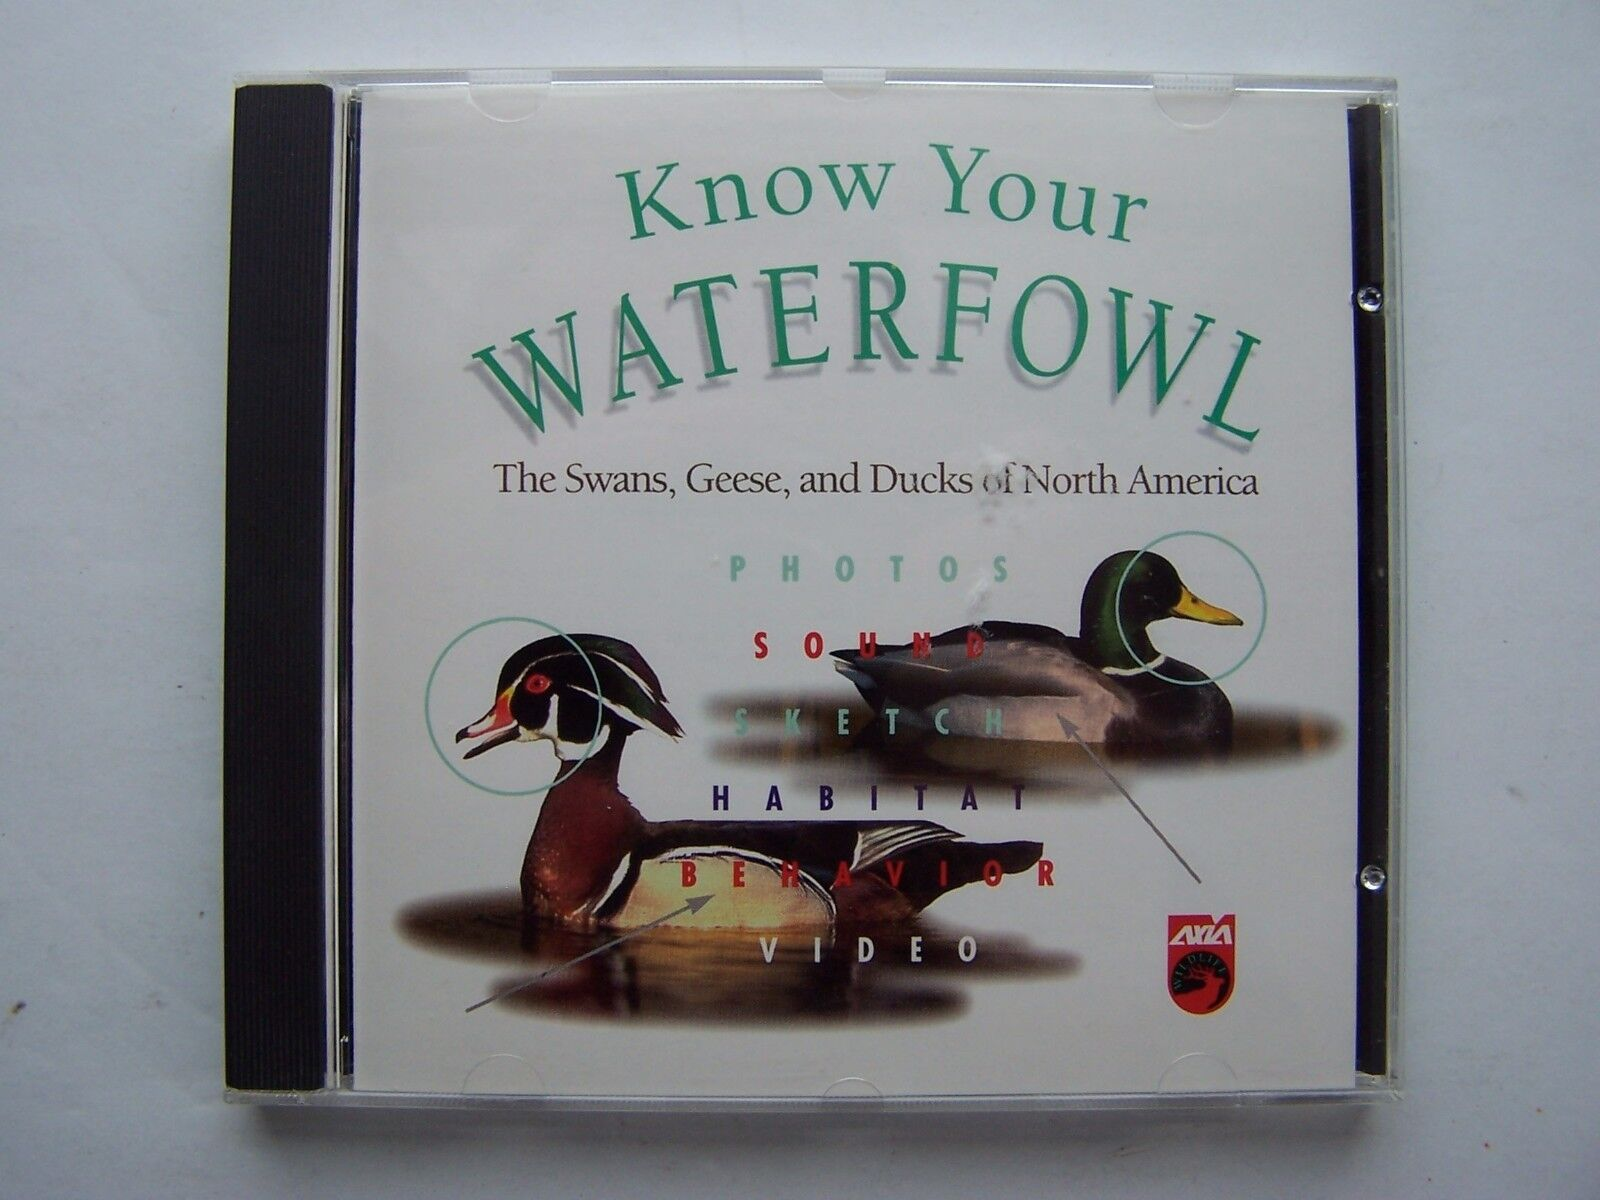 Know Your Waterfowl Multimedia PC CDROM 1995 Axia Inter